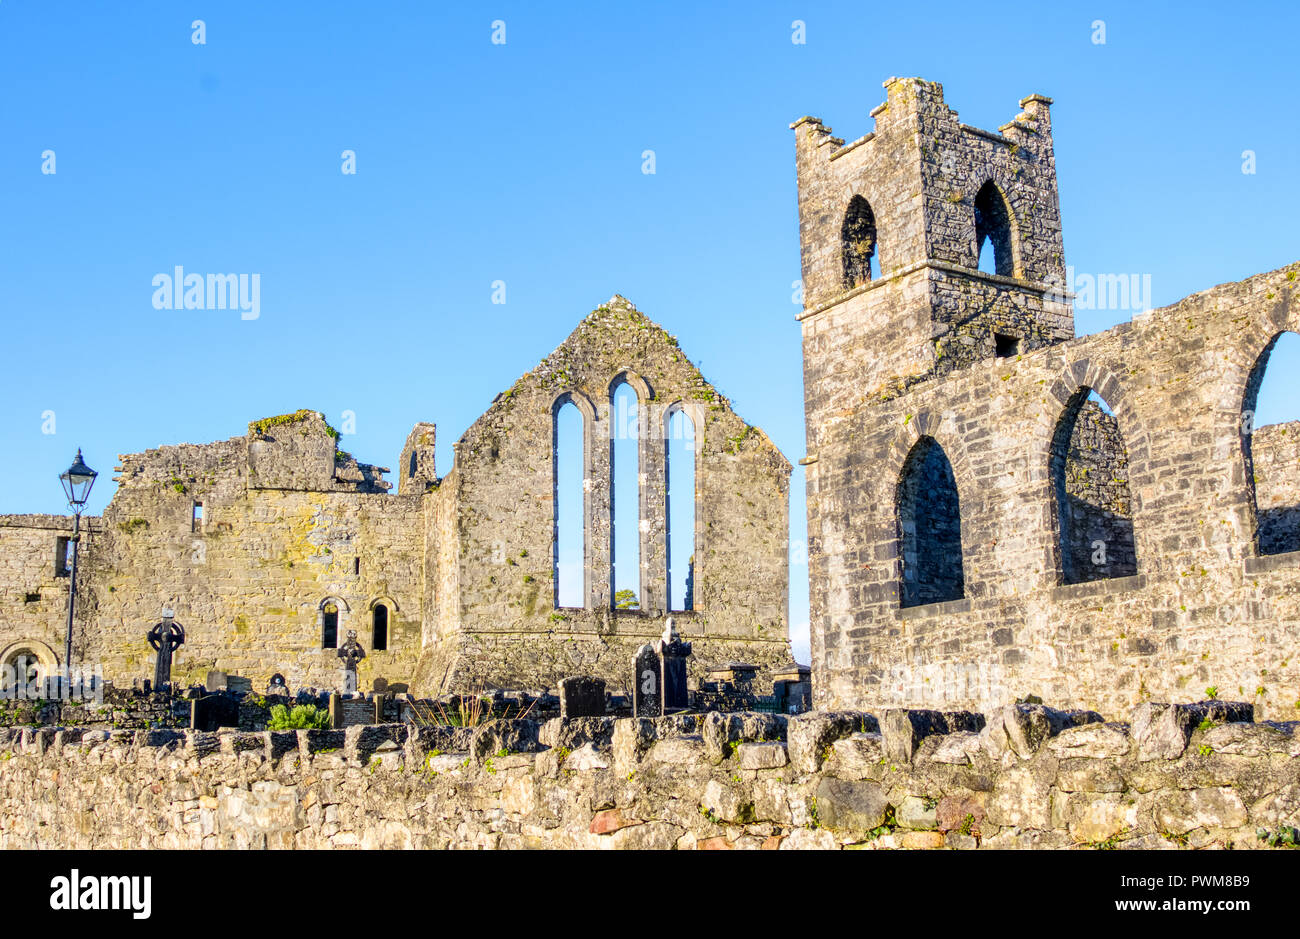 Cong Abbey in the village of the same name, straddling the County Galway and County Mayo borders in Ireland. The abbey dates back to the 12th Century. Stock Photo